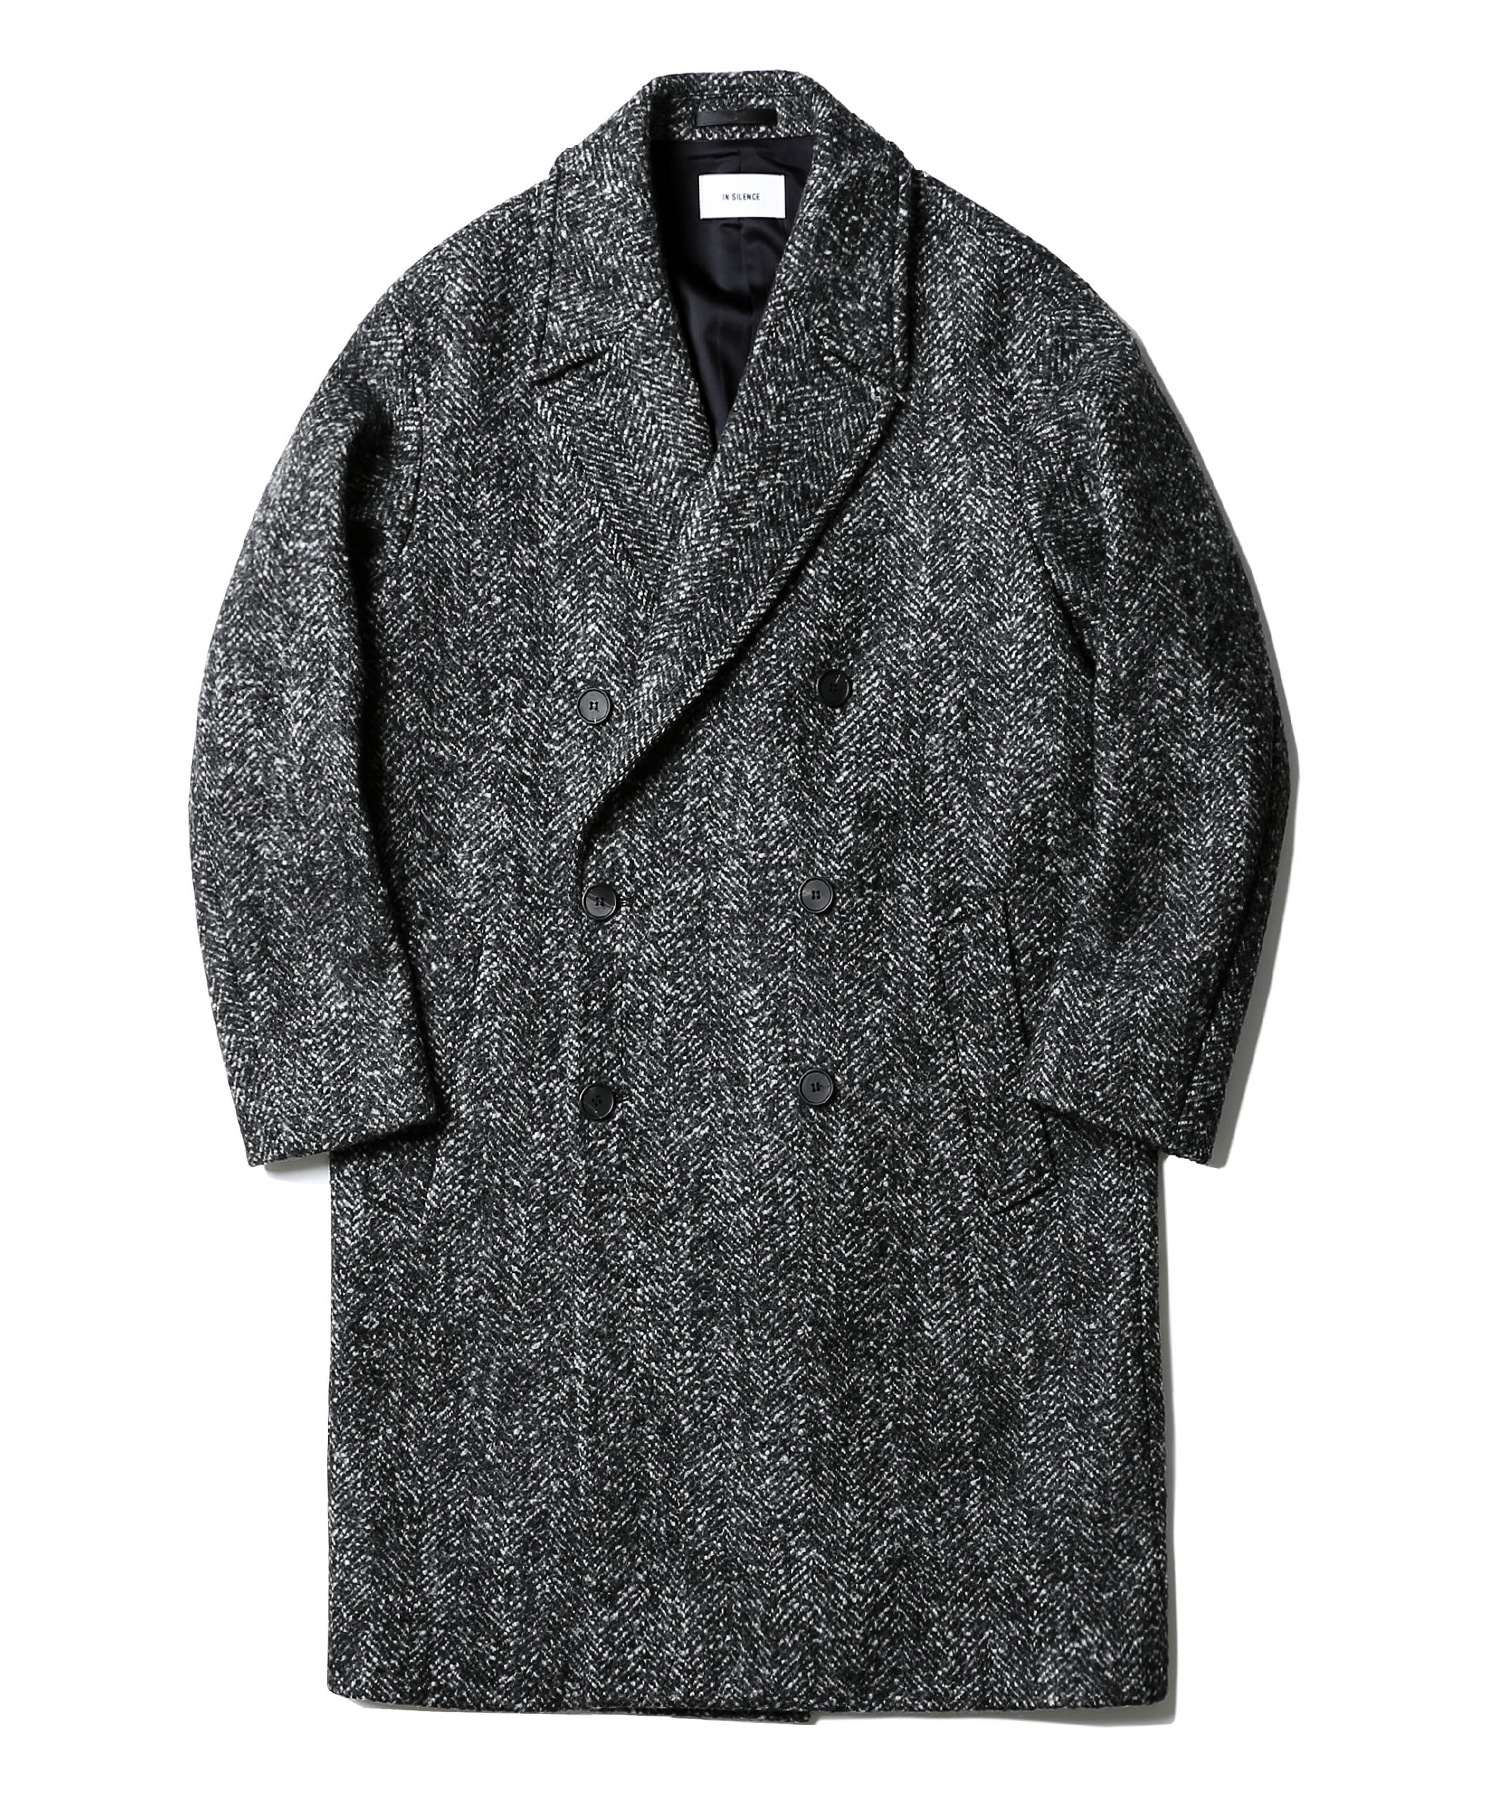 Double Oversize Coat (Herringbone)